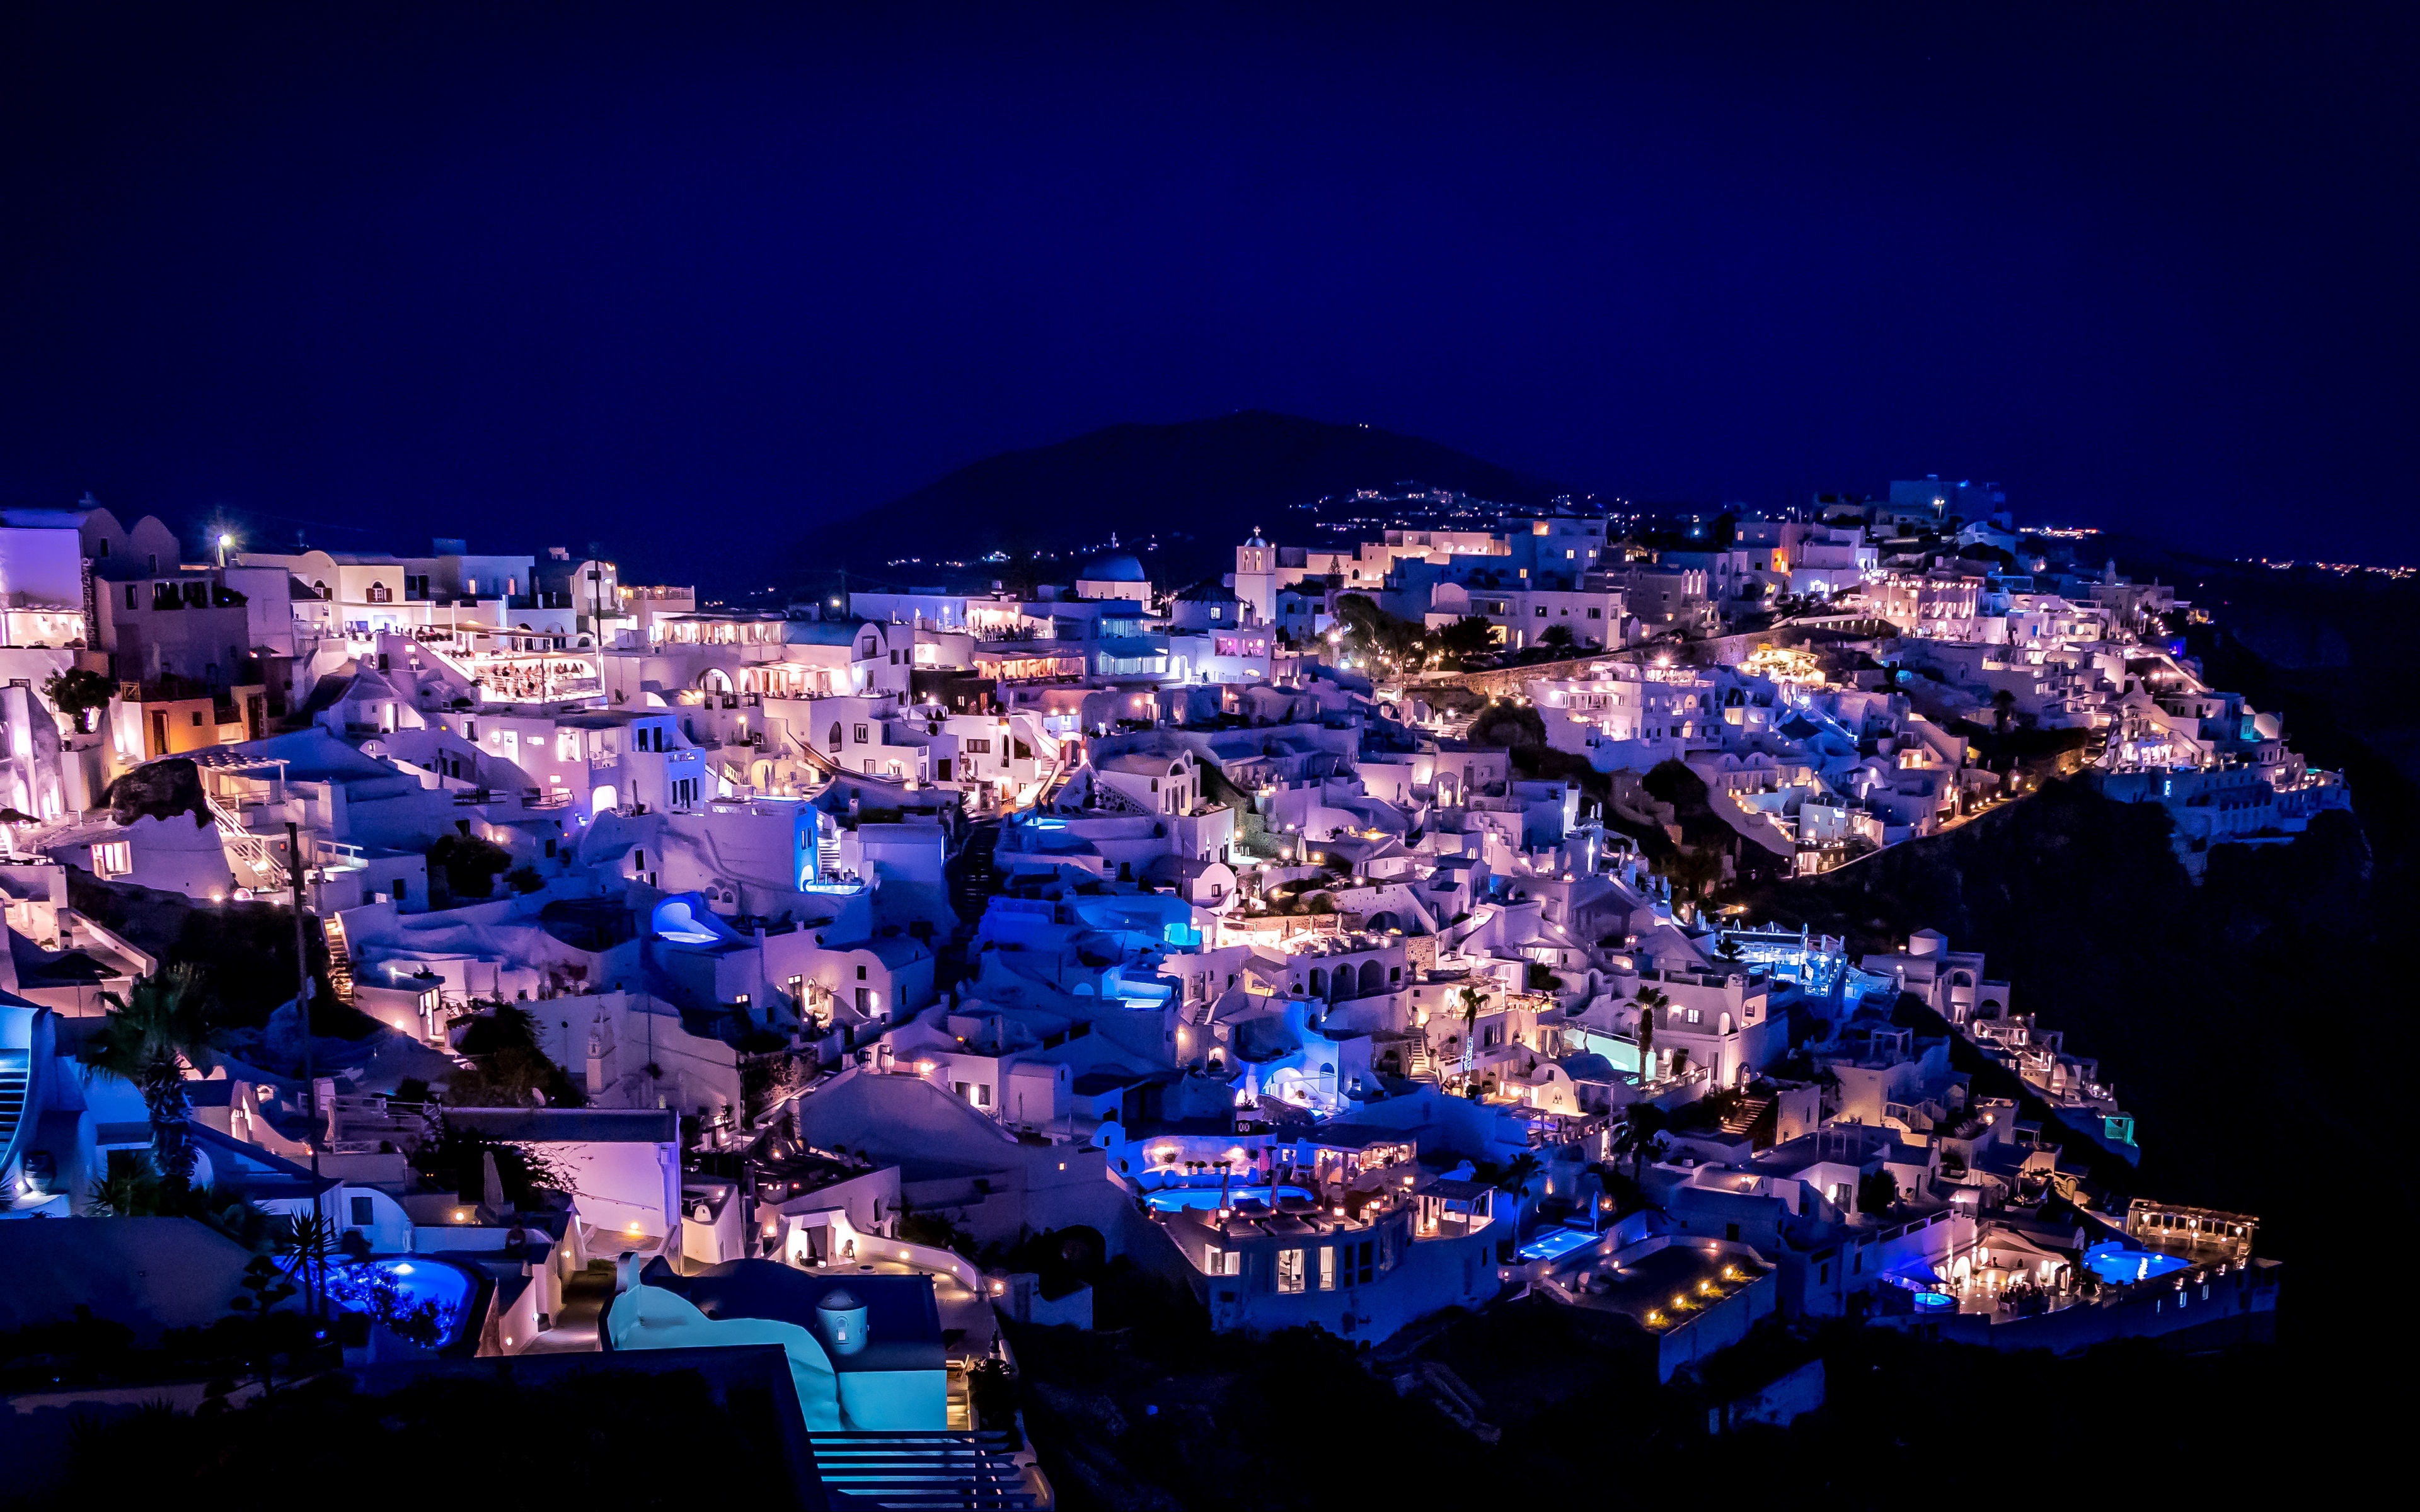 Download wallpaper 3840x2400 santorini greece night city 3840x2400